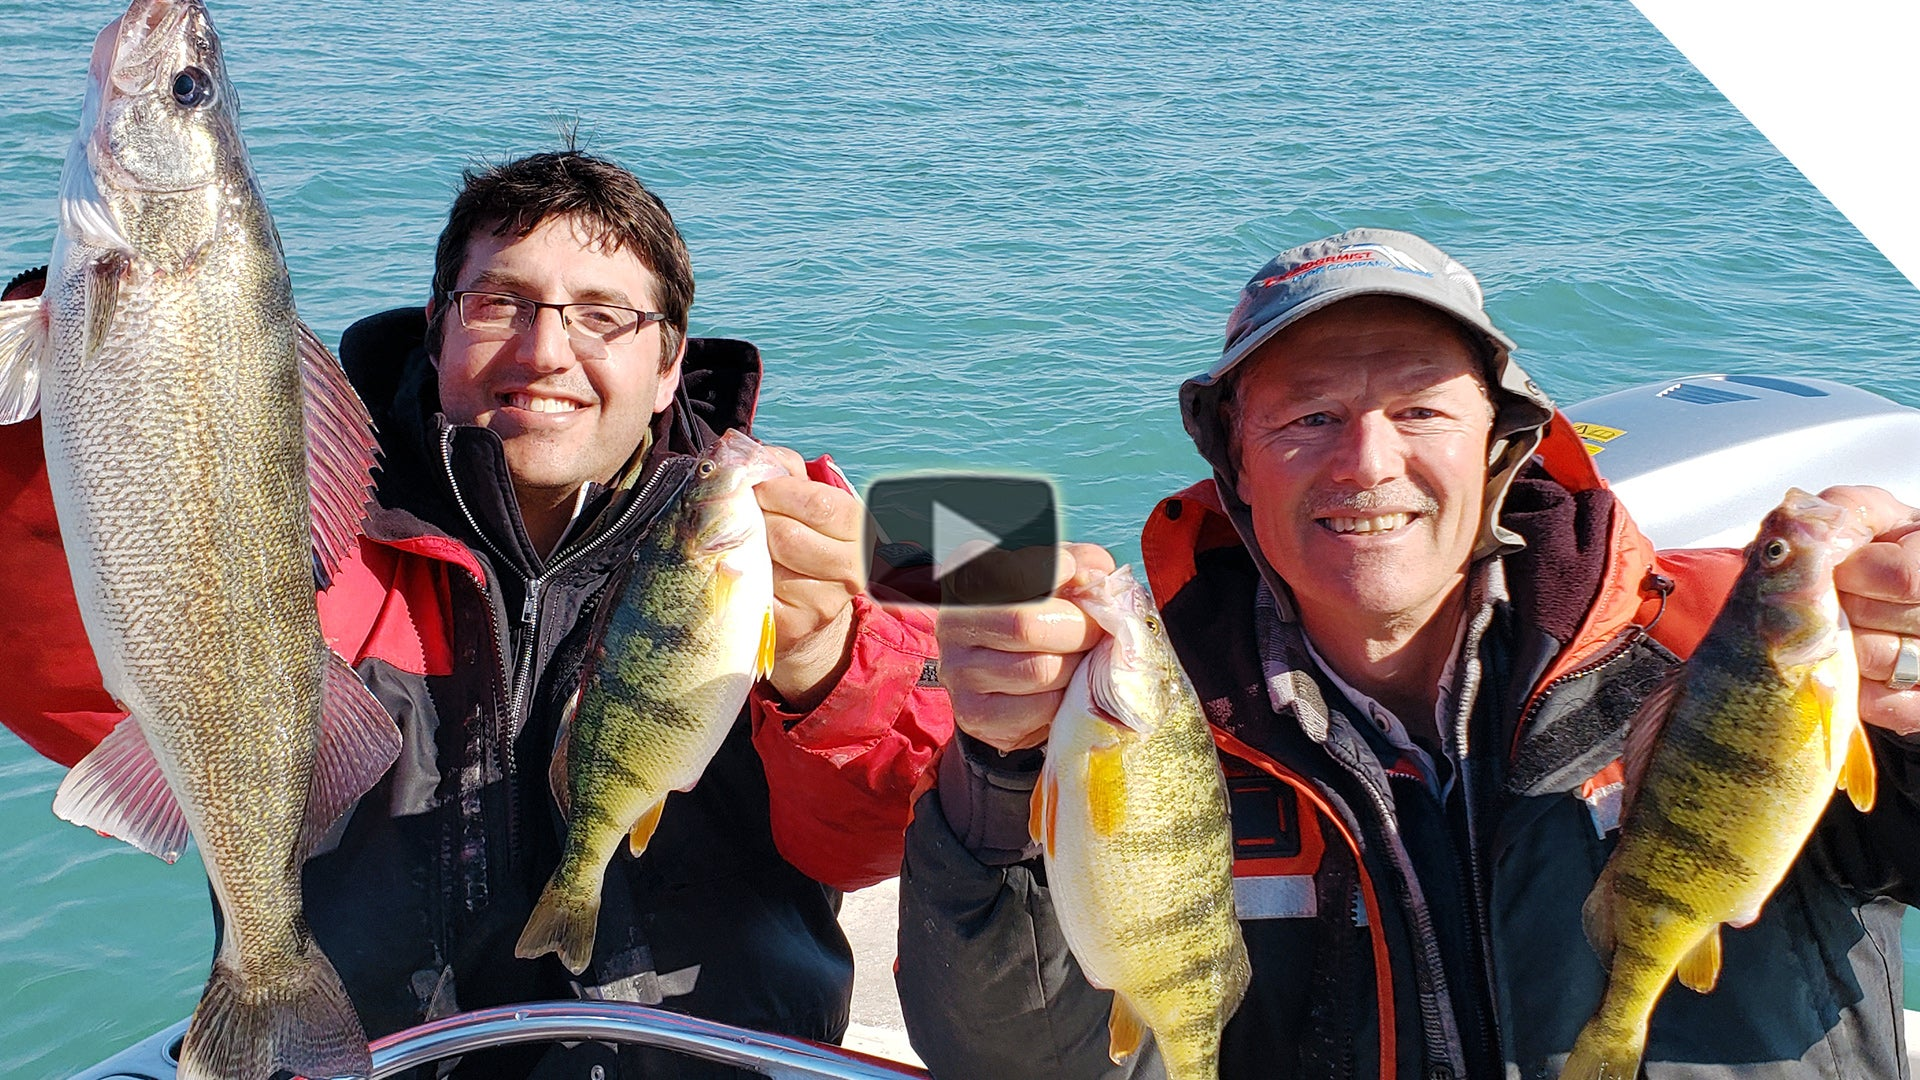 Fishing for Perch with Live Minnows